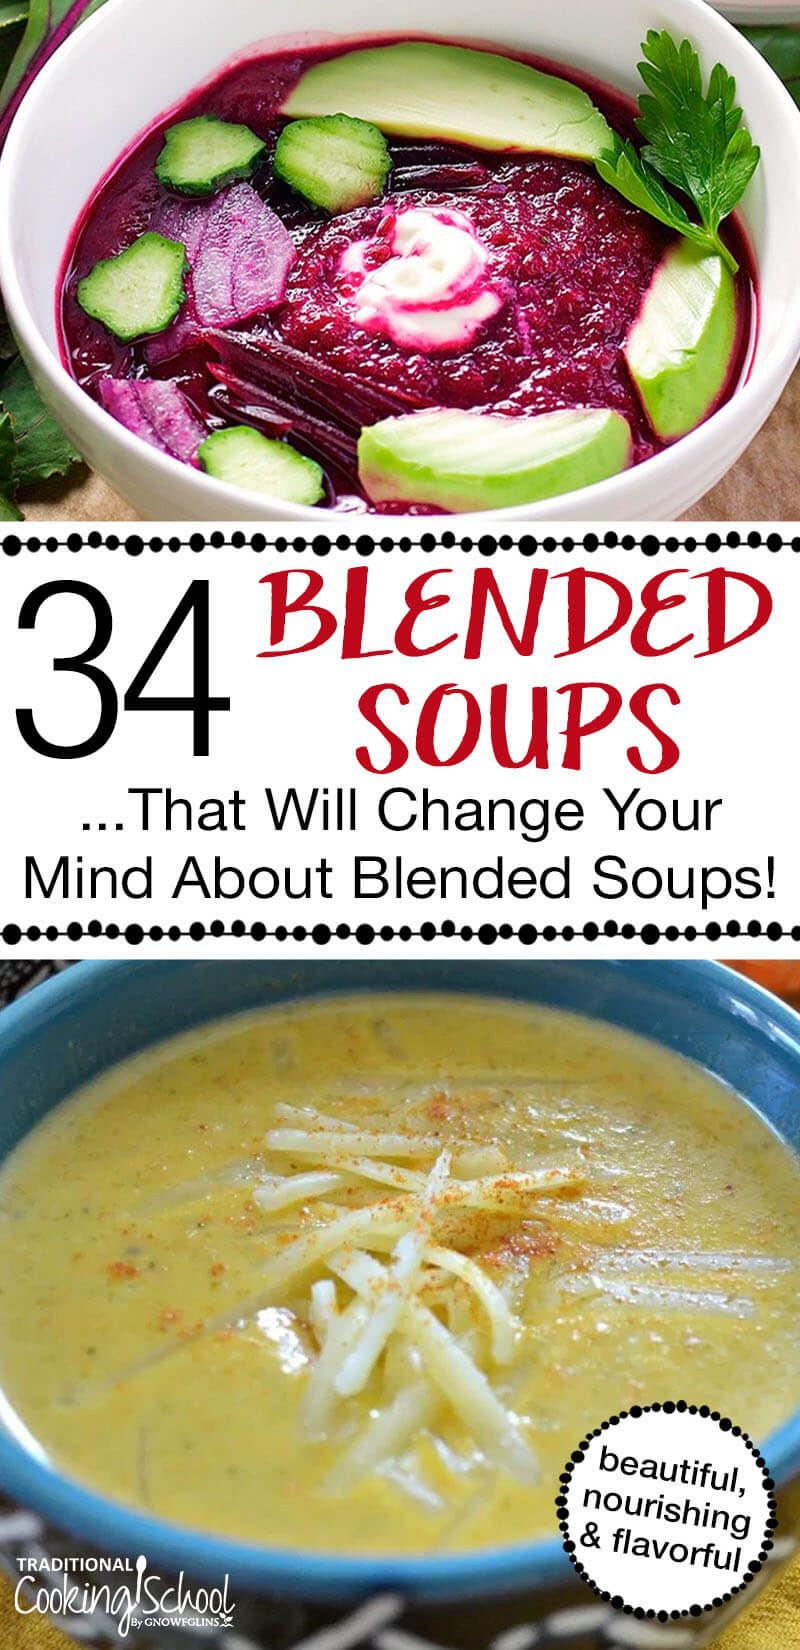 34 Blended Soups That Will Change Your Mind About Blended Soup images